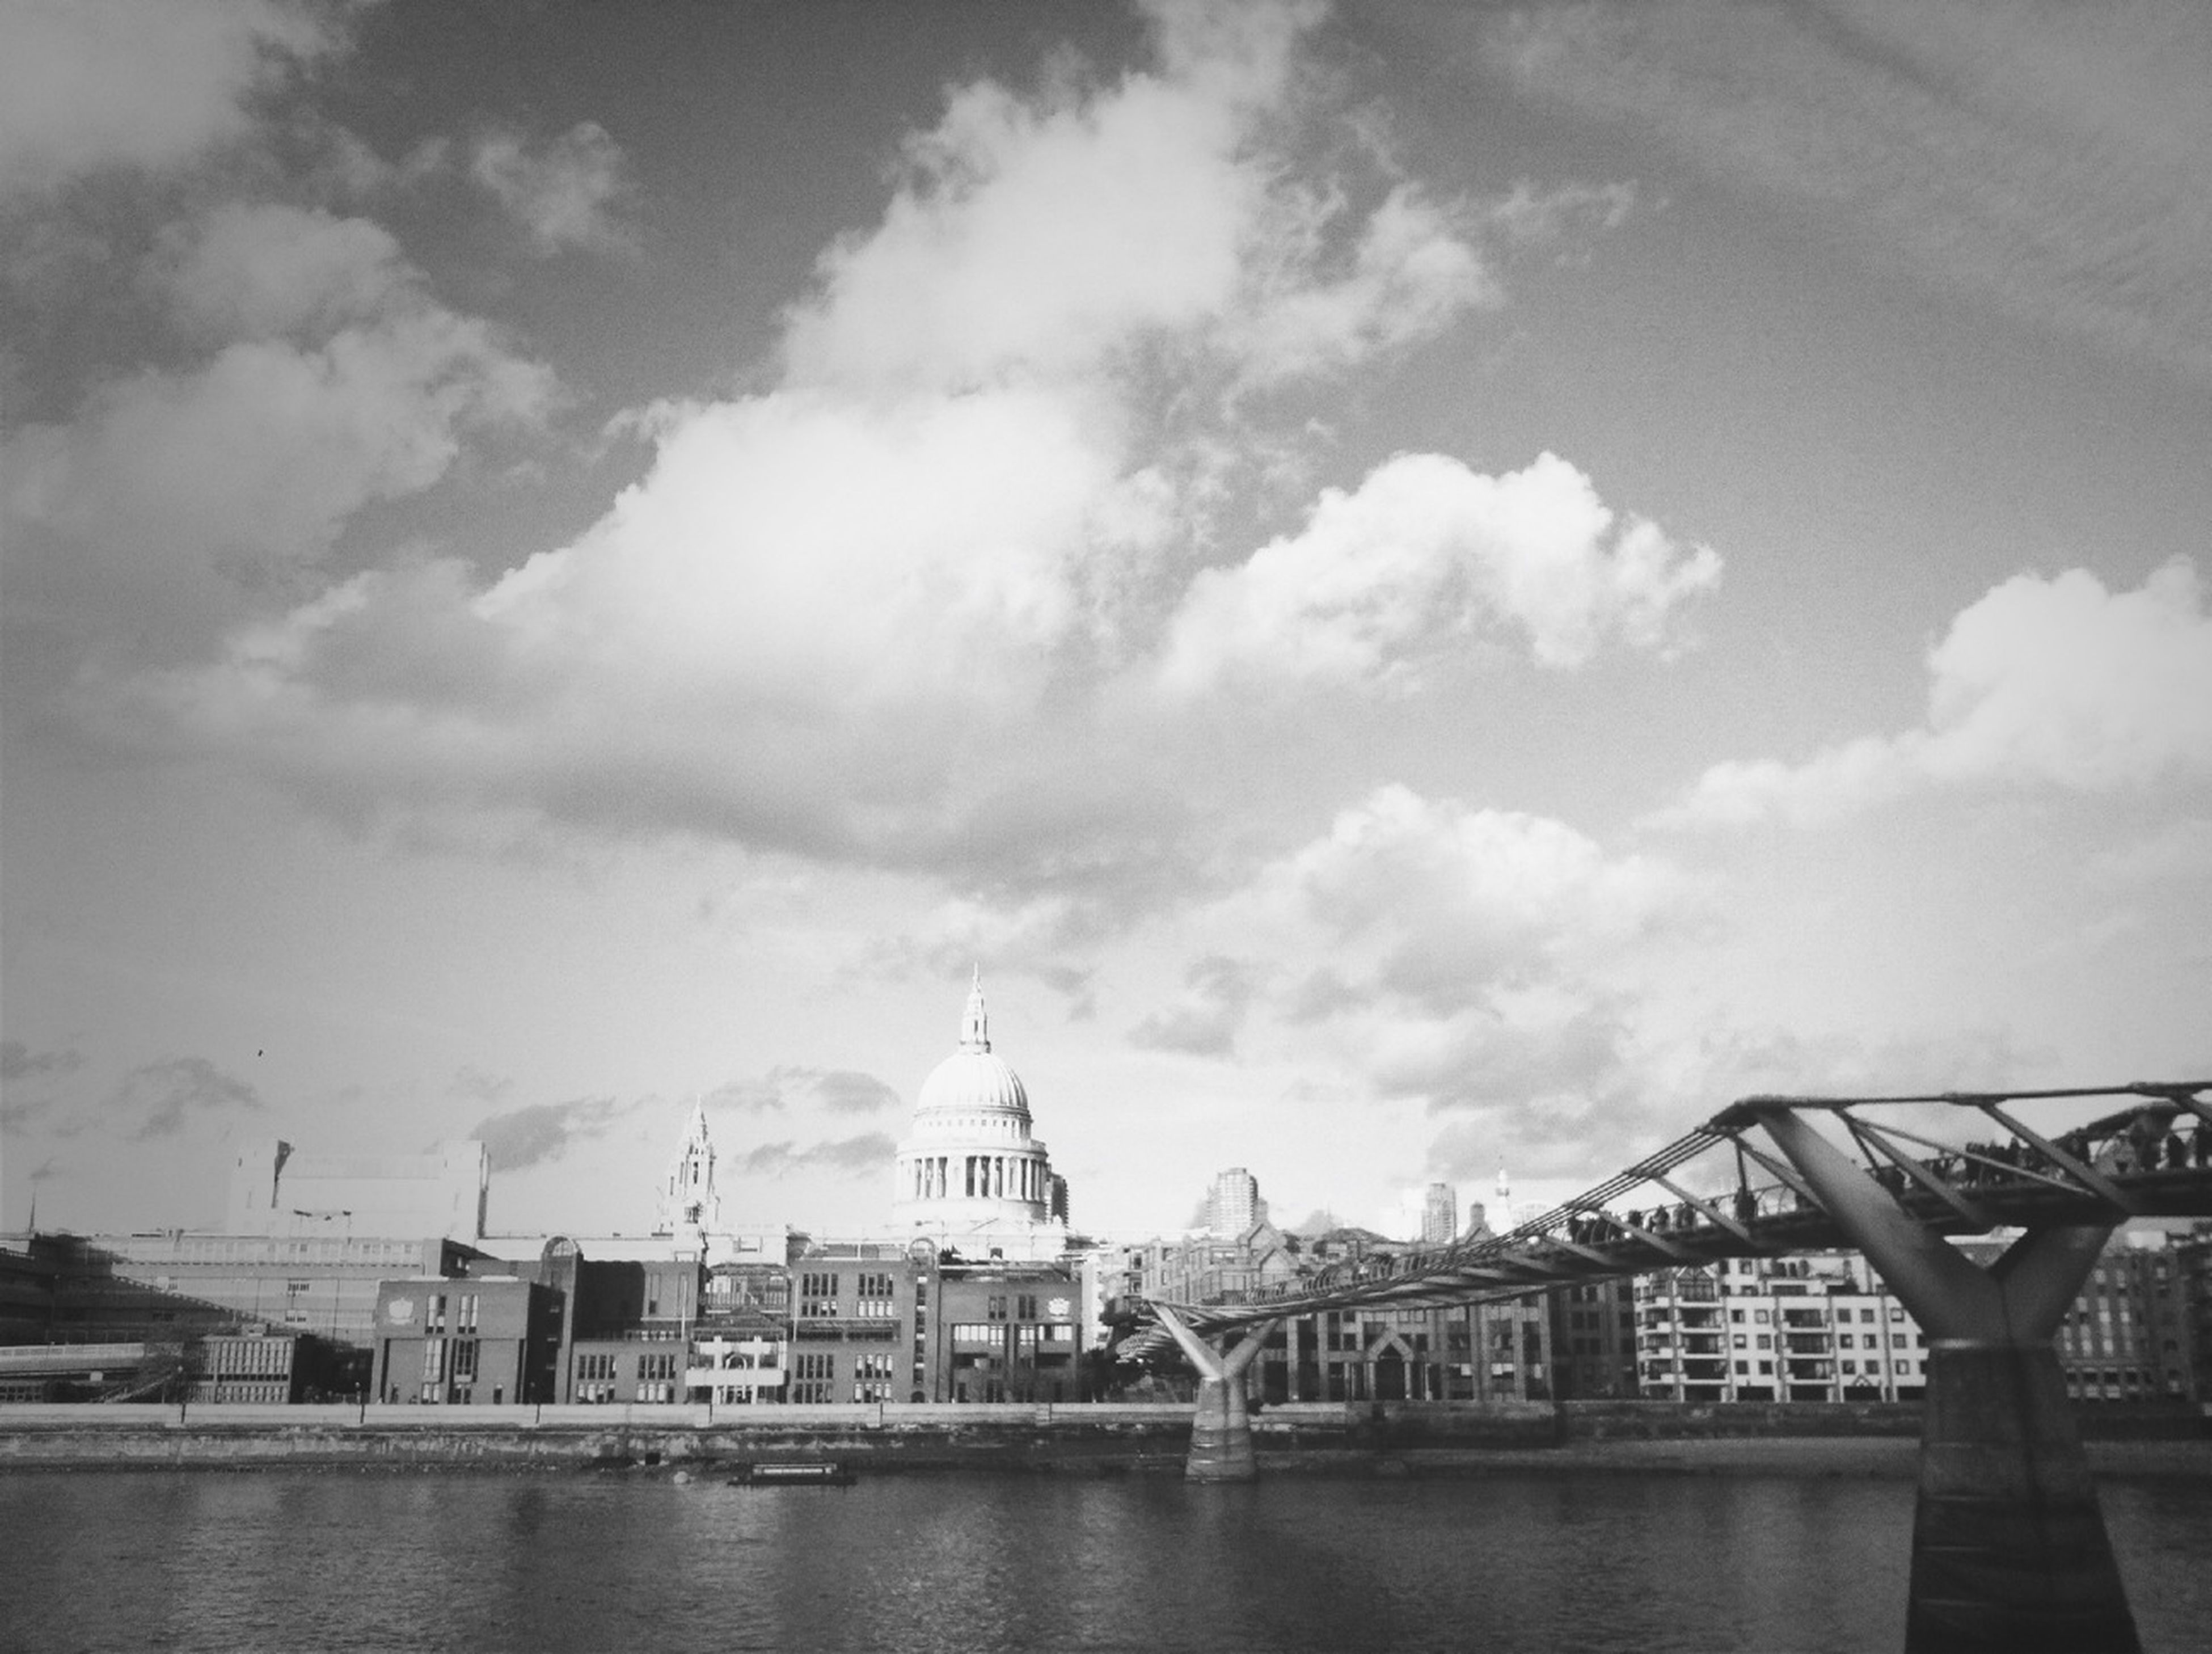 architecture, built structure, building exterior, sky, cloud - sky, water, waterfront, cloudy, nautical vessel, cloud, day, river, city, transportation, outdoors, weather, no people, crane - construction machinery, mode of transport, travel